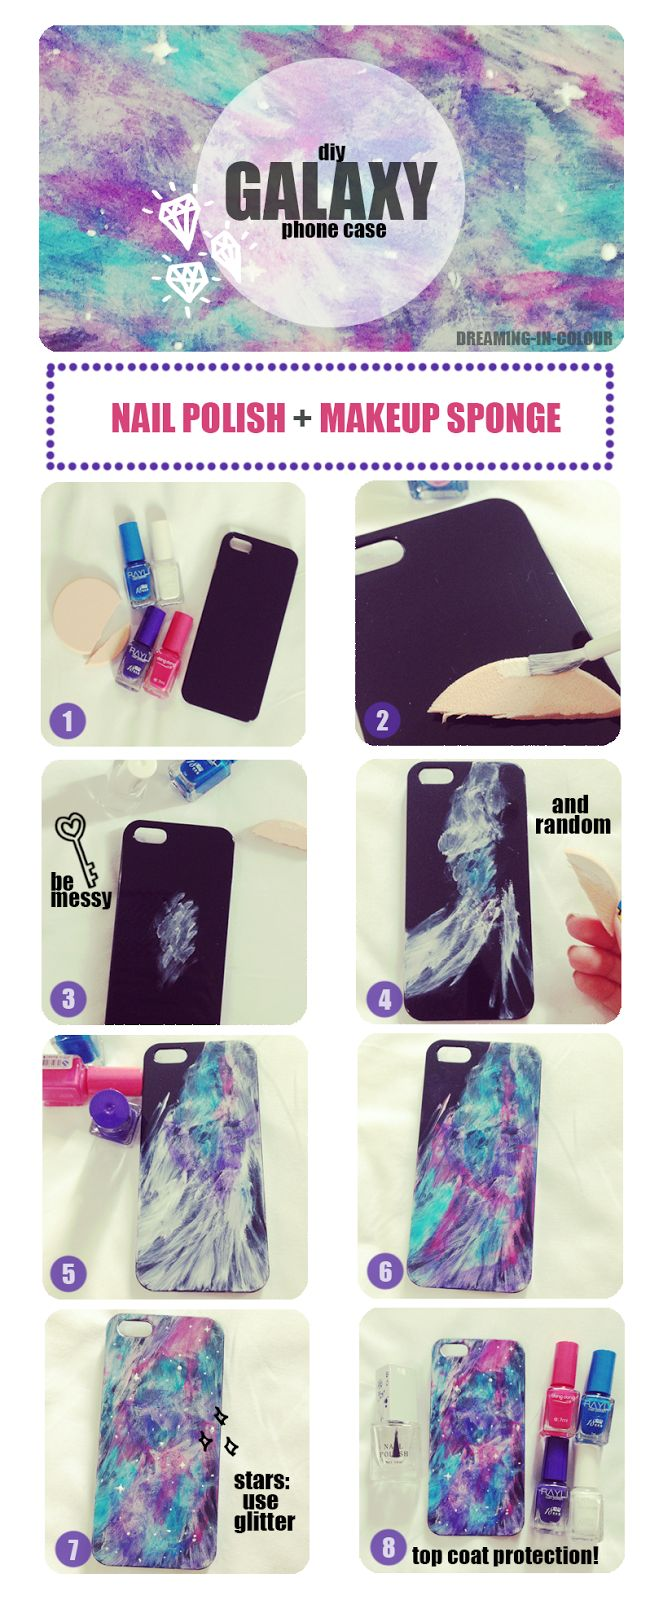 diy.fashion.nails.life.: diy: aurora galaxy phone case